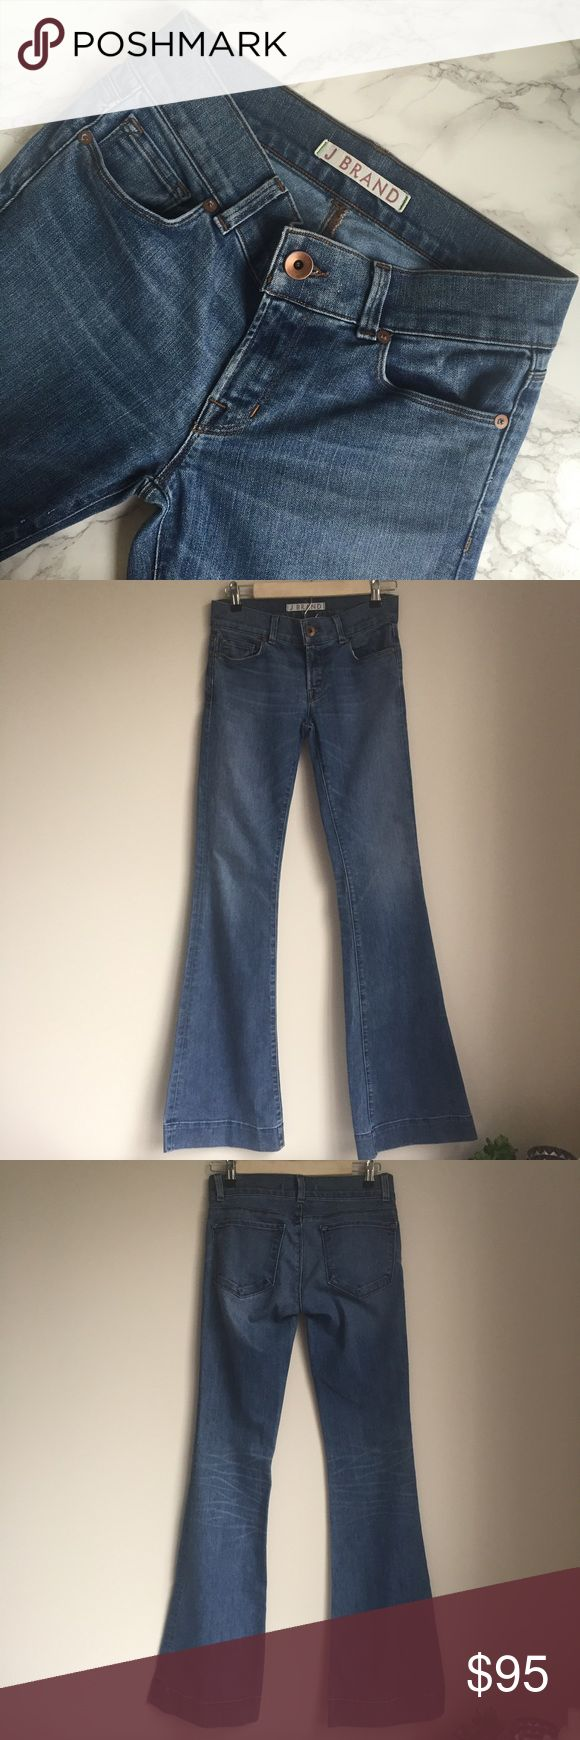 J BRAND Lovestory Flare Jeans Excellent condition. Inseam is approximately 35 inches and rise is about 7 inches. J Brand Jeans Flare & Wide Leg